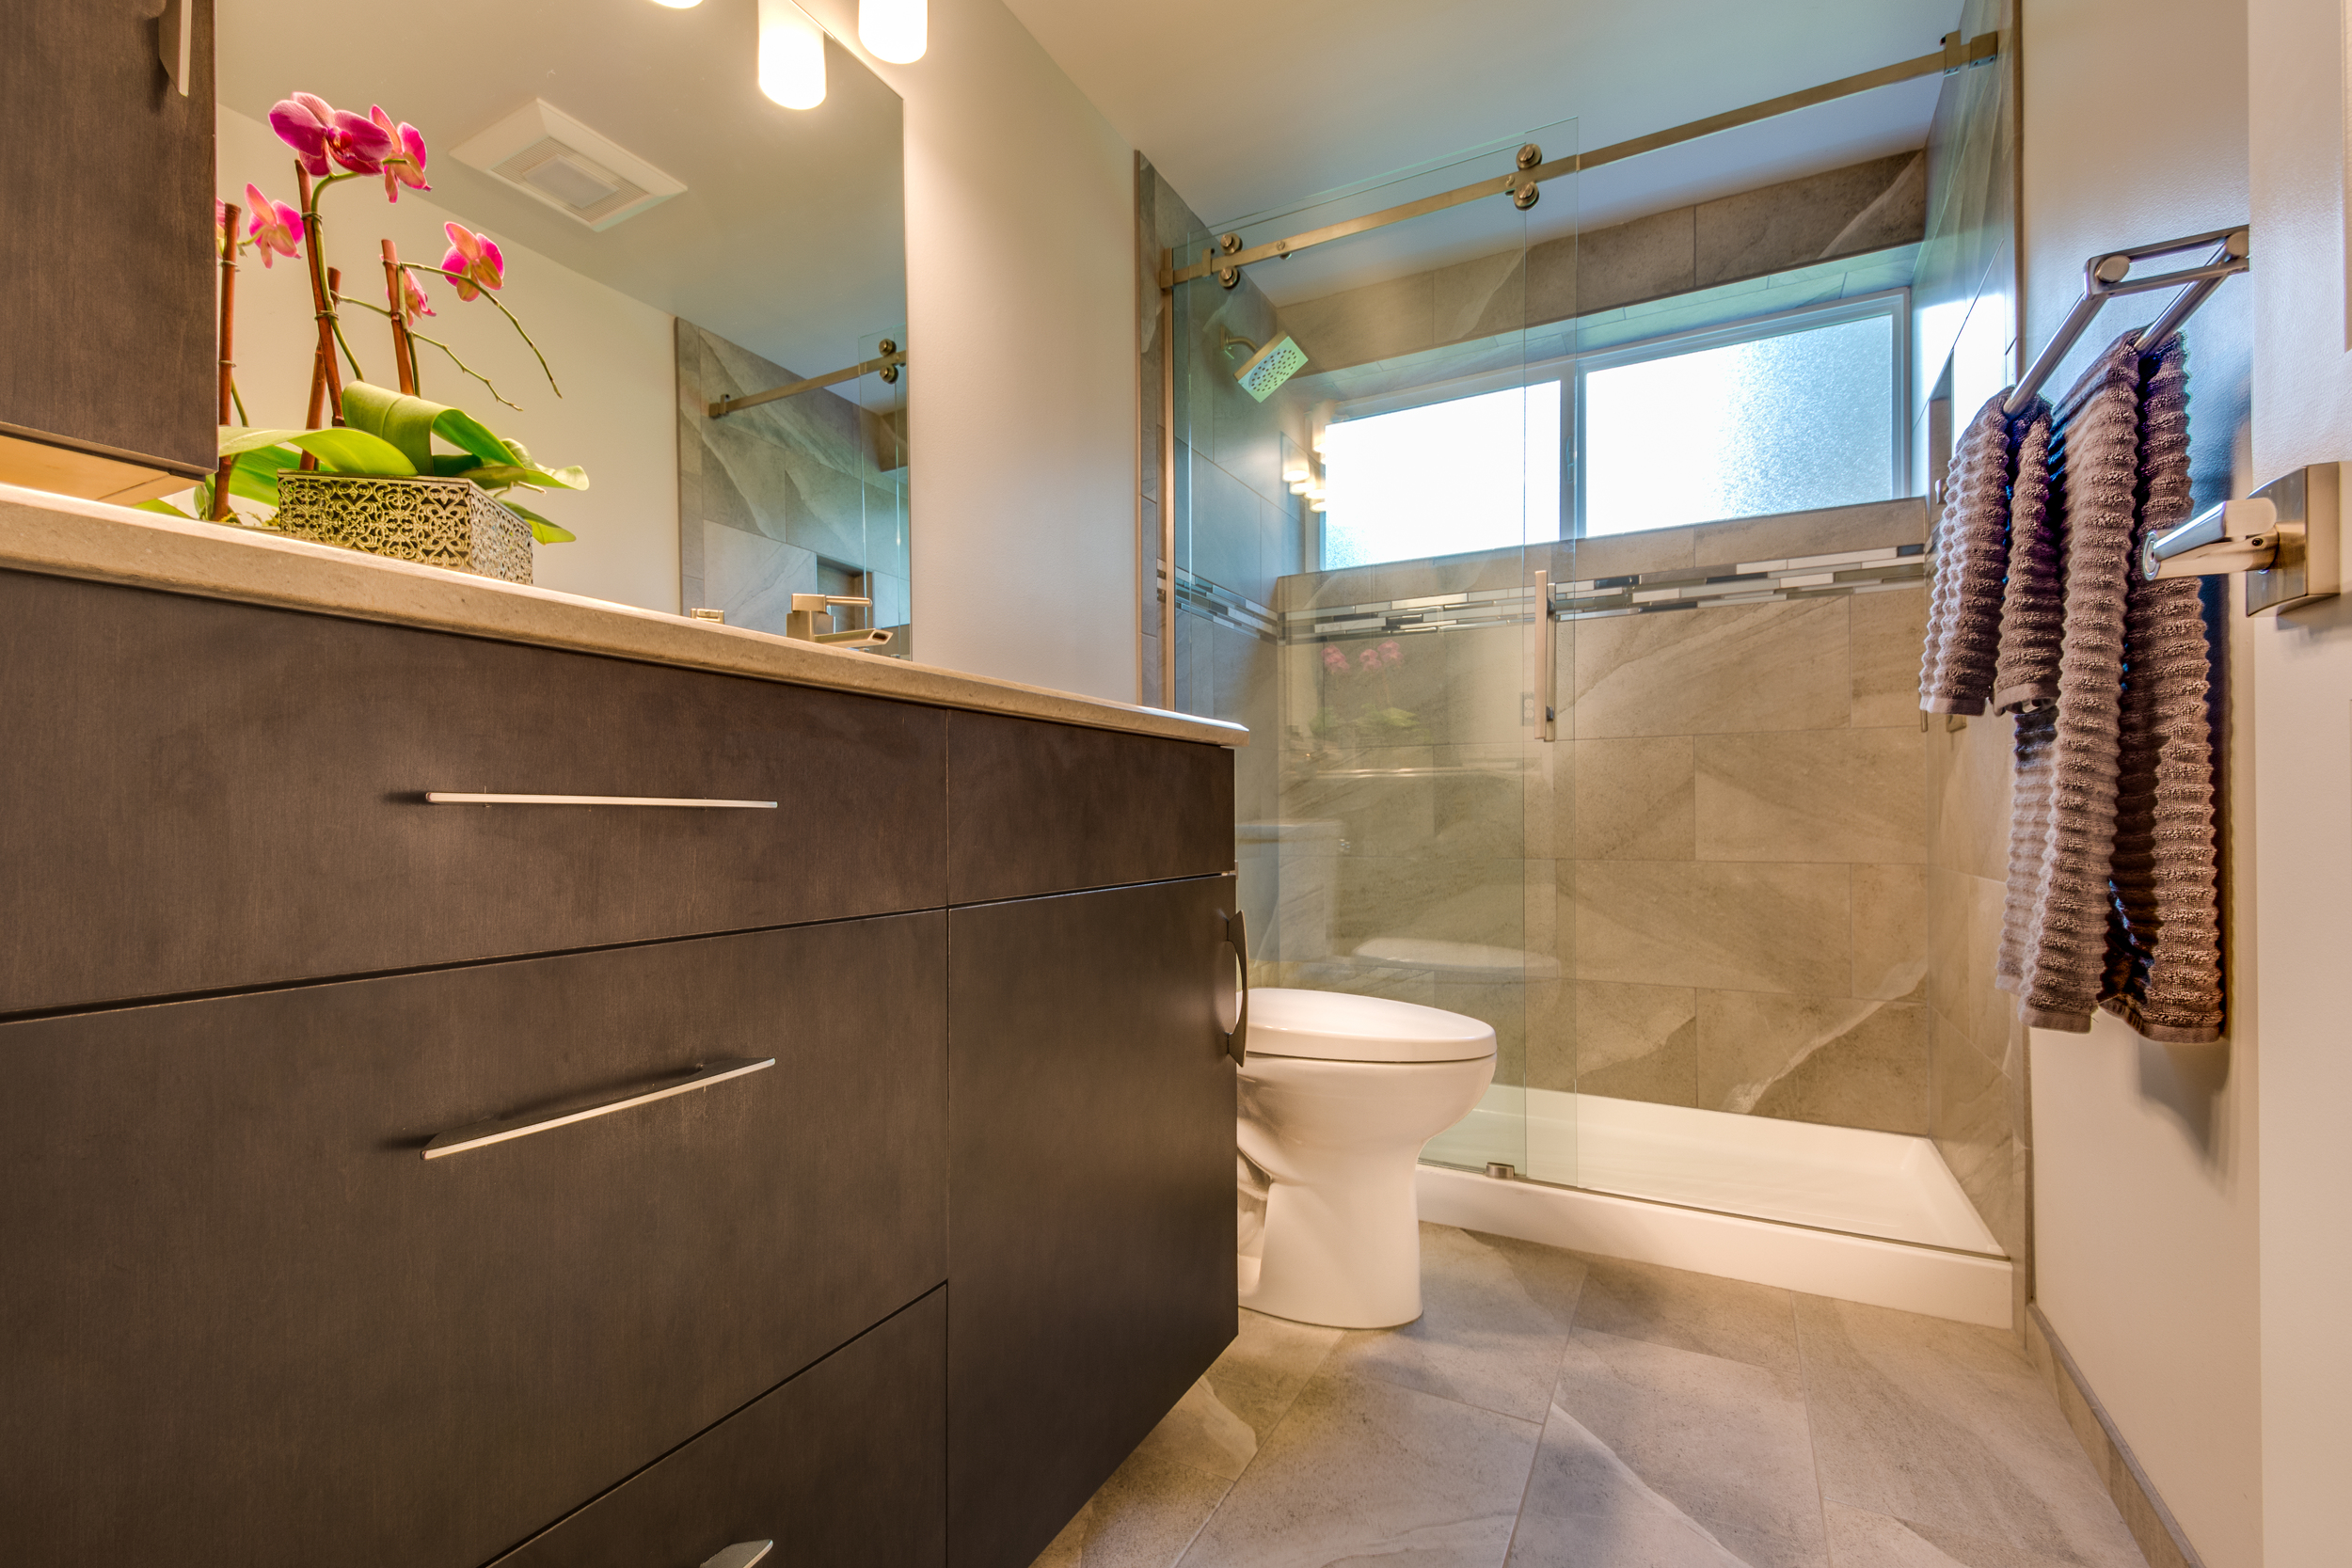 Vanderbeken Remodel Ricker hall bathroom REX award entry-6.jpg